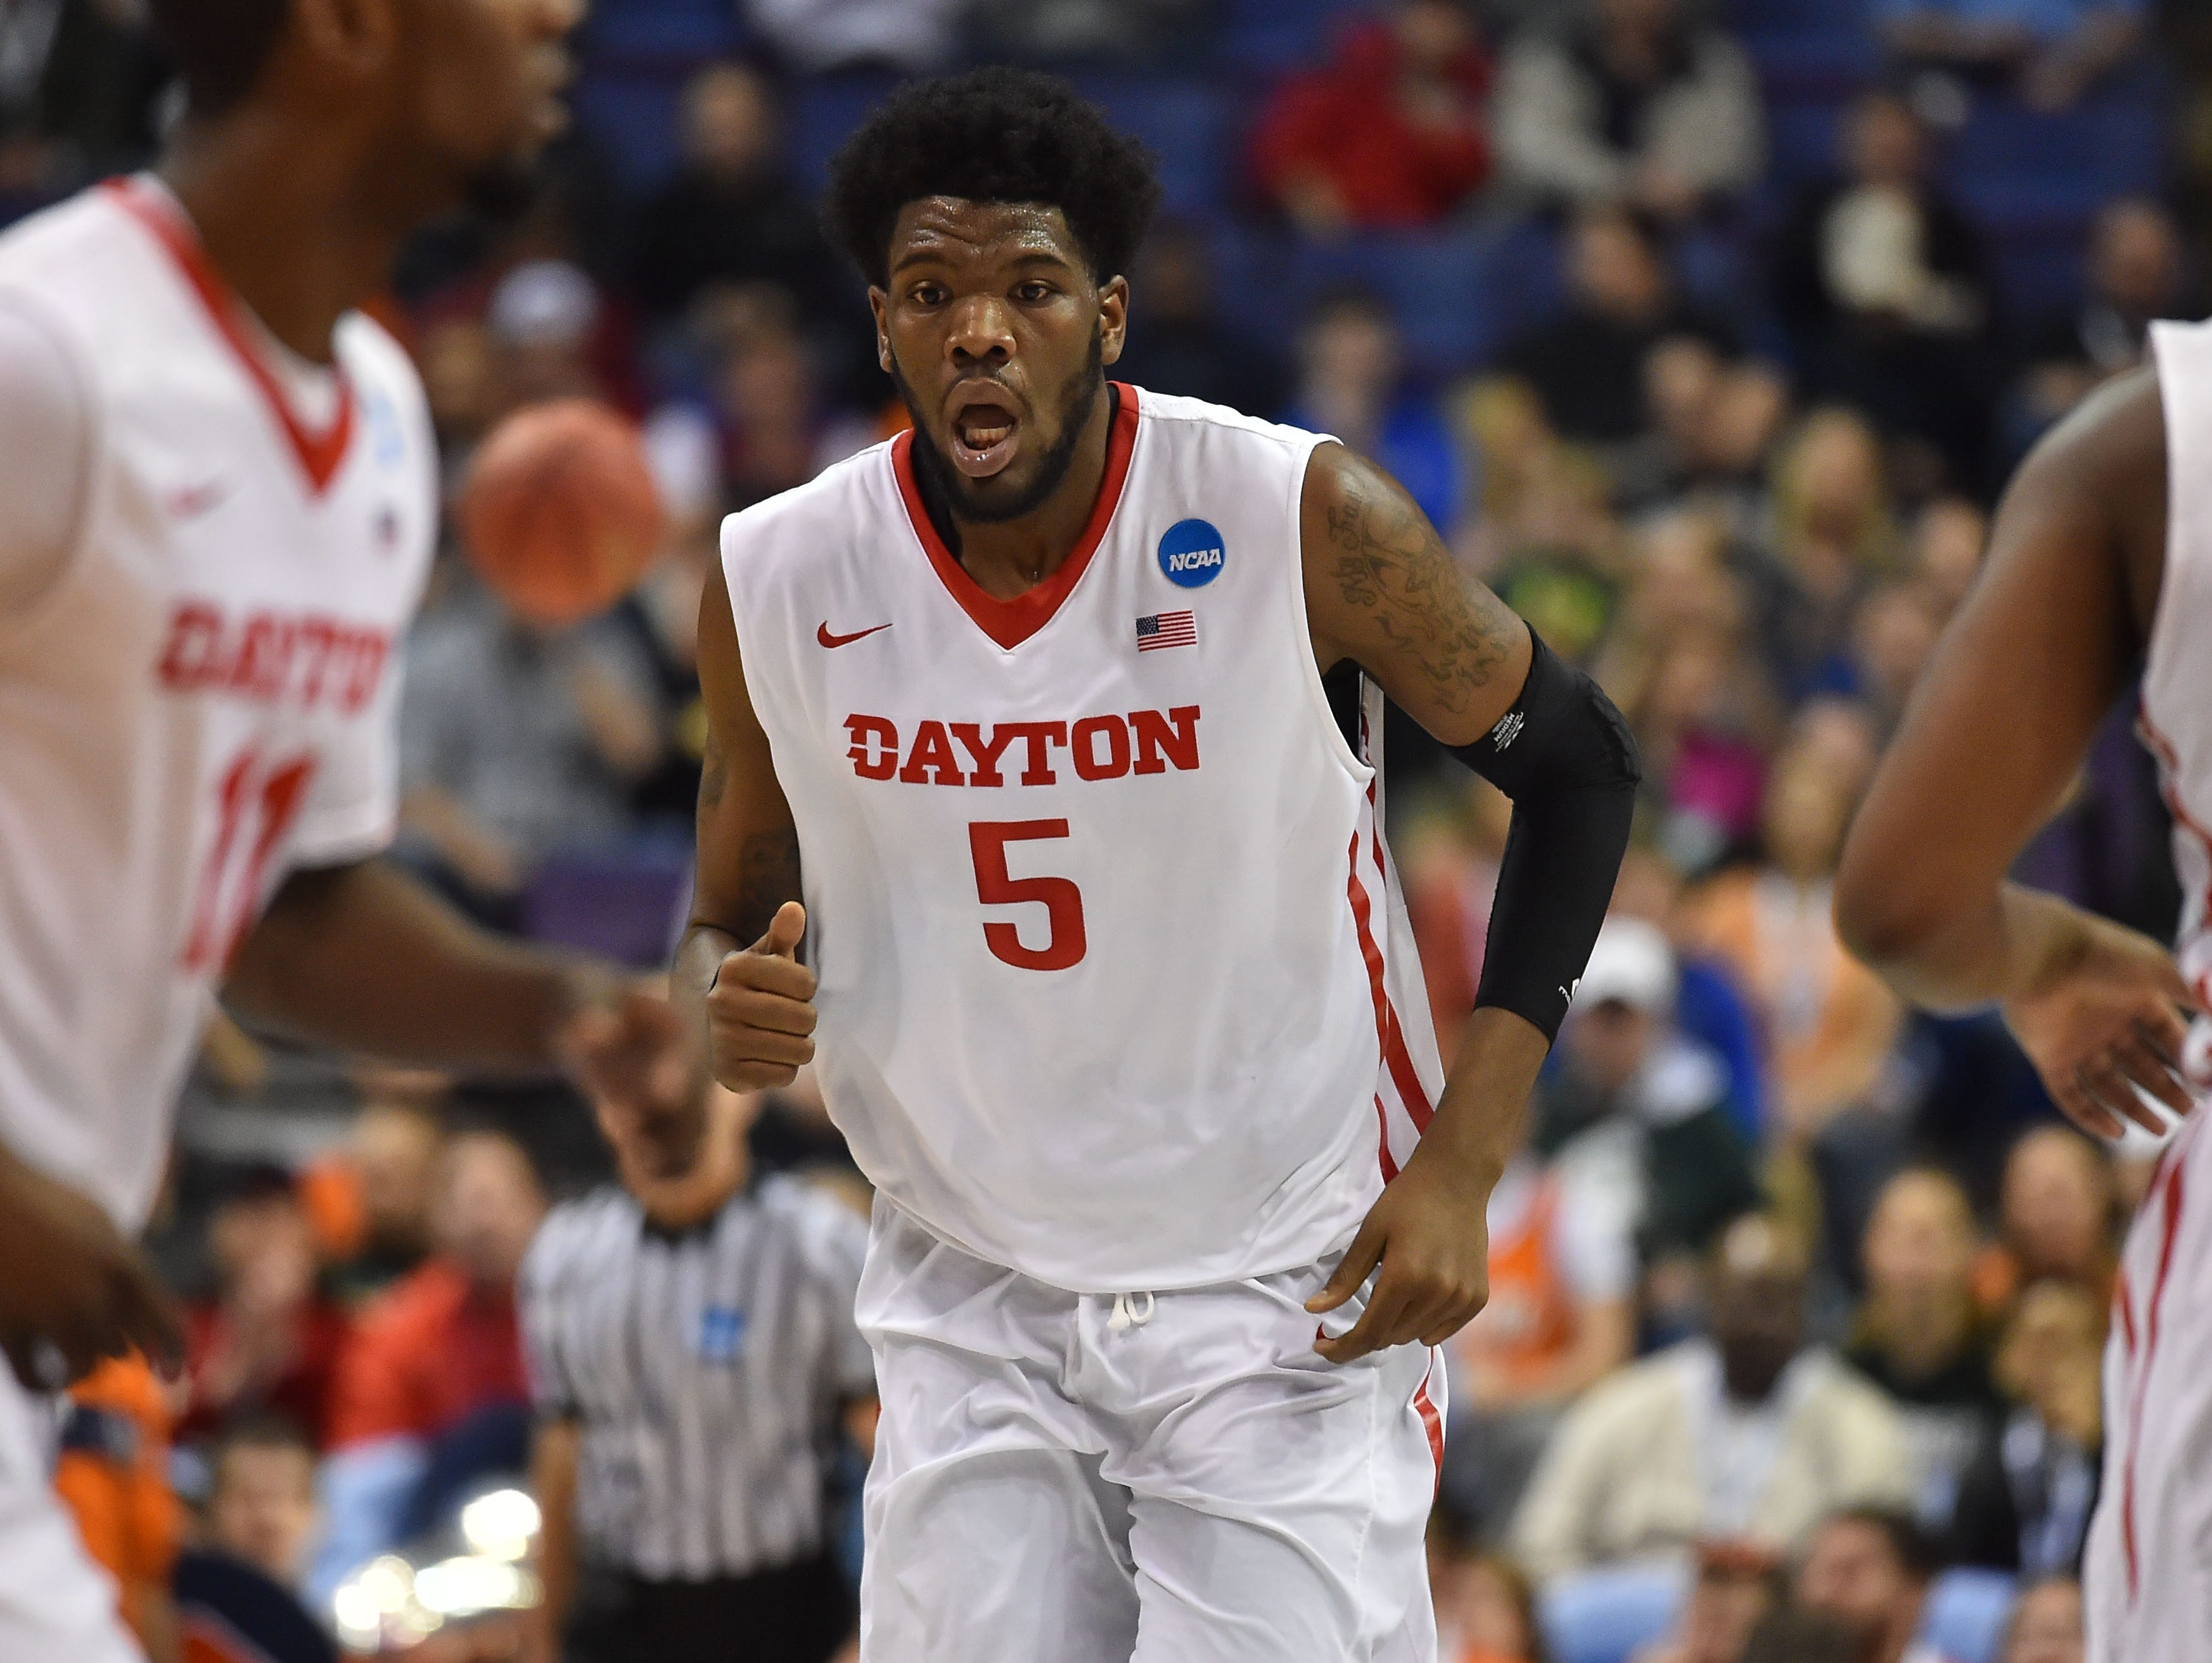 Dayton Flyers center Steve McElvene (5) runs up the court during the first half of the first round against the Syracuse Orange in the 2016 NCAA Tournament at Scottrade Center.